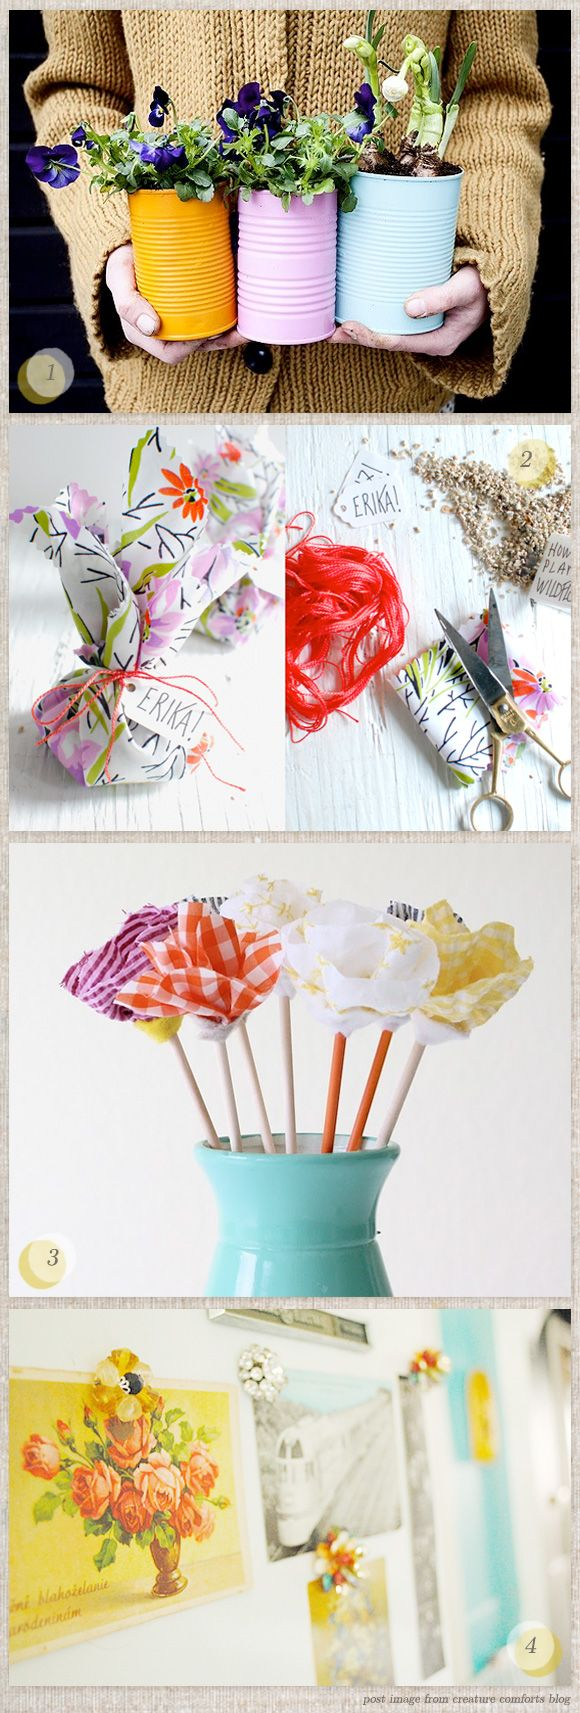 DIY GIfts: Tins Flowers, Crafty Gardens, Gifts Ideas, Gifts Diy Projects, Diy Gifts, Tins Planters, Tins Cans, Fabrics Flowers, Wraps Ideas